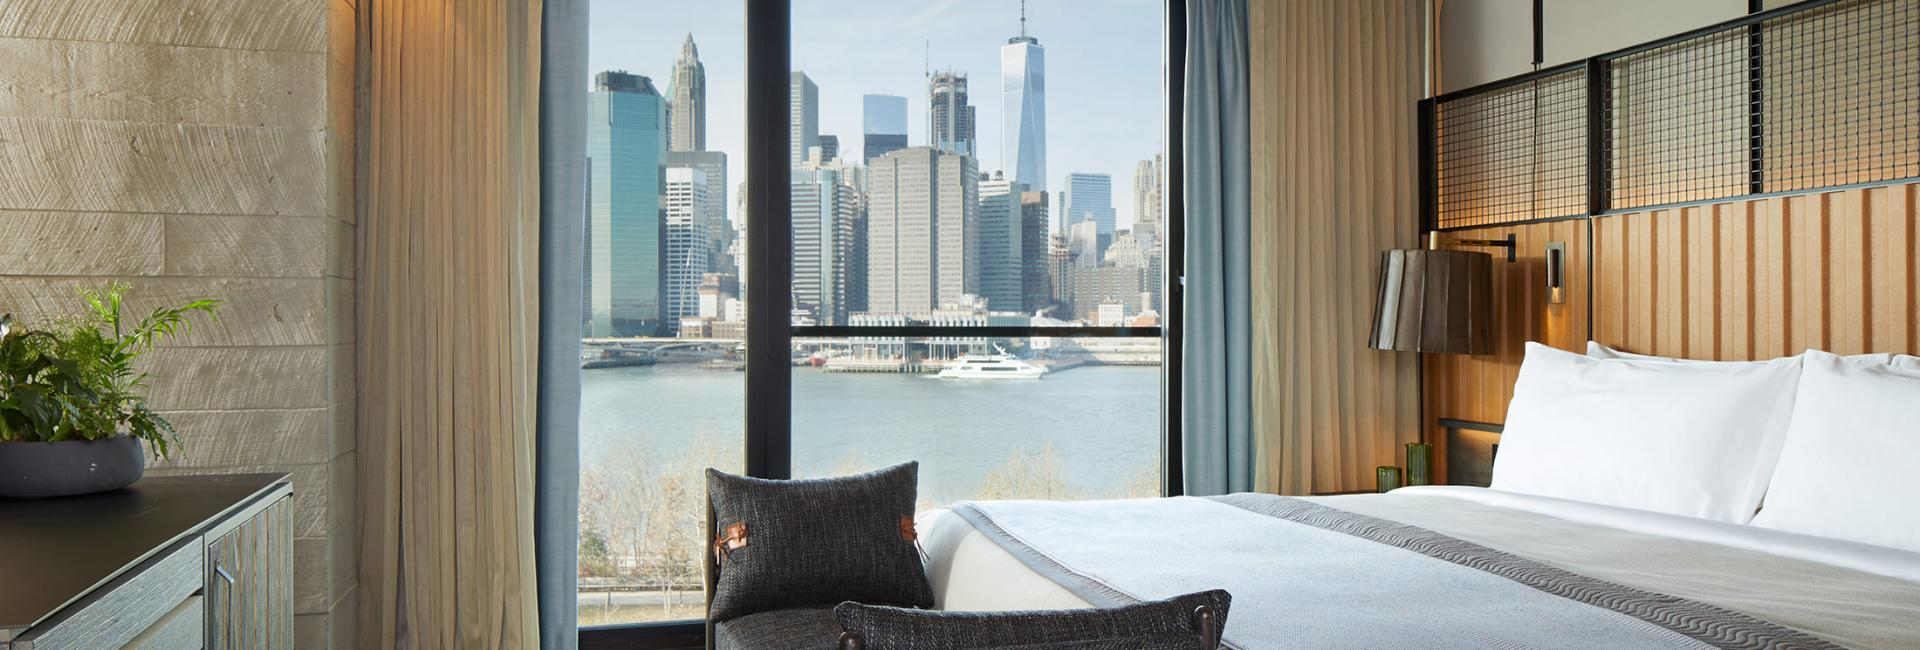 The Skyline suite at 1 Hotel Brooklyn Bridge with view of NYC skyline